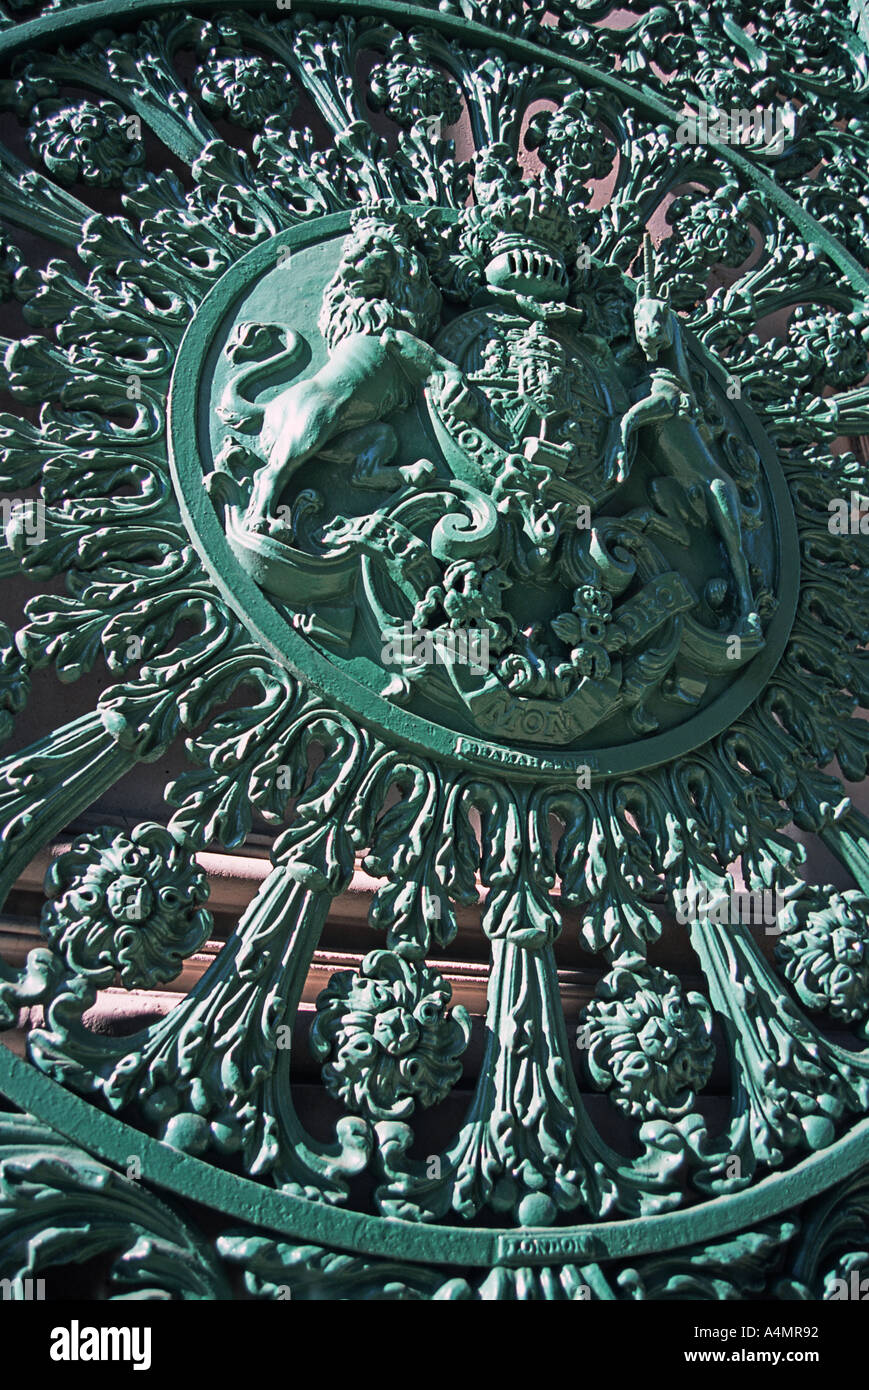 Detail of the heraldic royal insignia on the cast iron gate beneath the Wellington Arch Hyde Park Corner London England - Stock Image